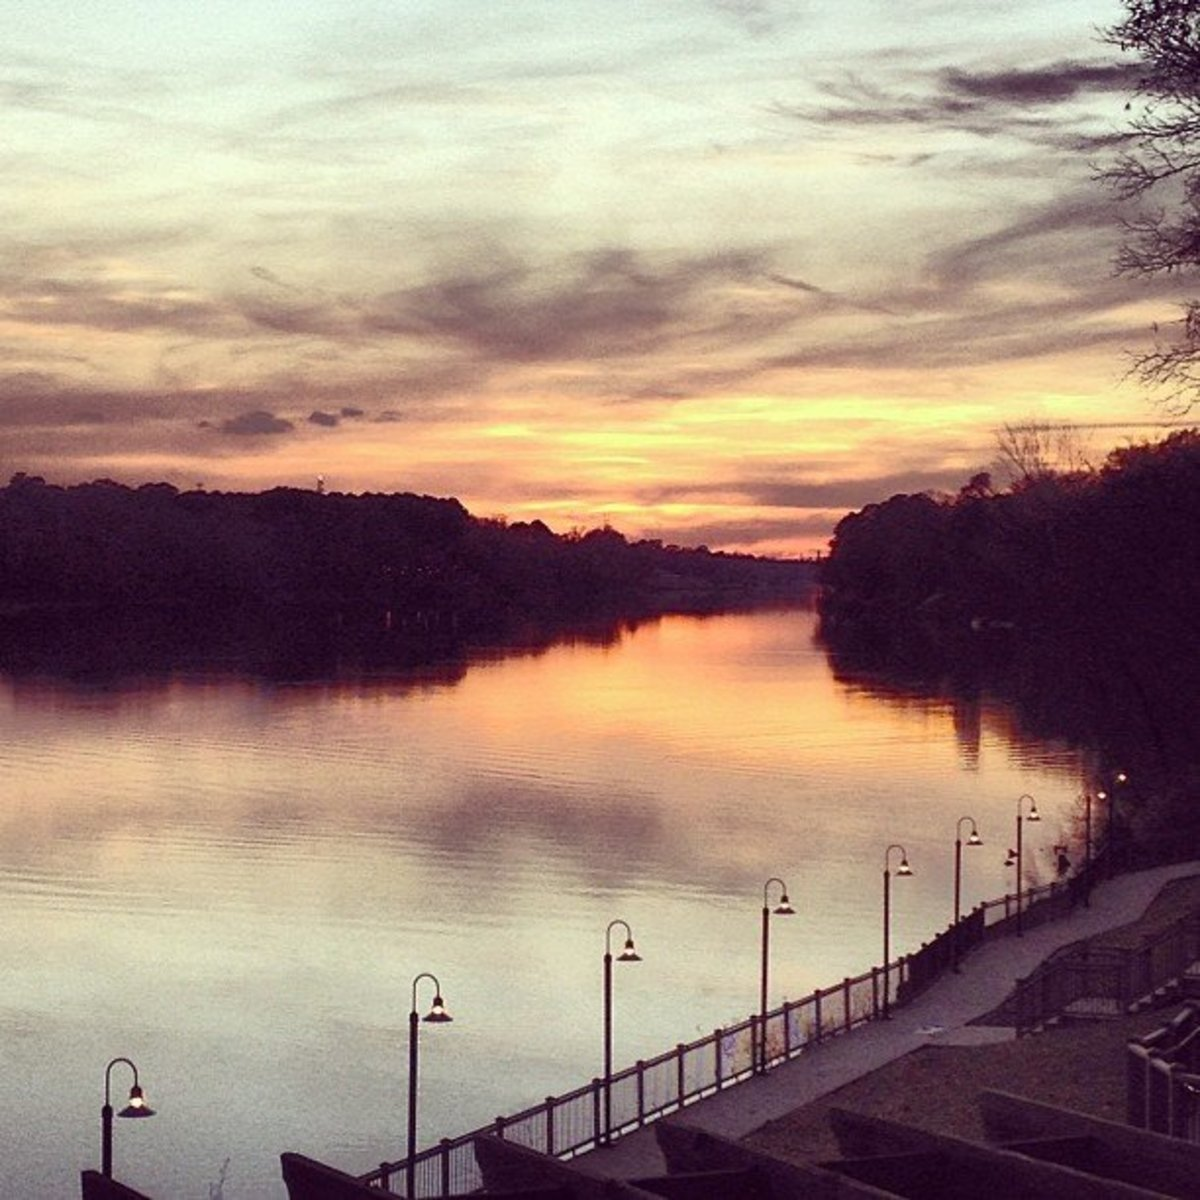 Stunning sunset over the Black Warrior River from the back deck of Cypress Inn